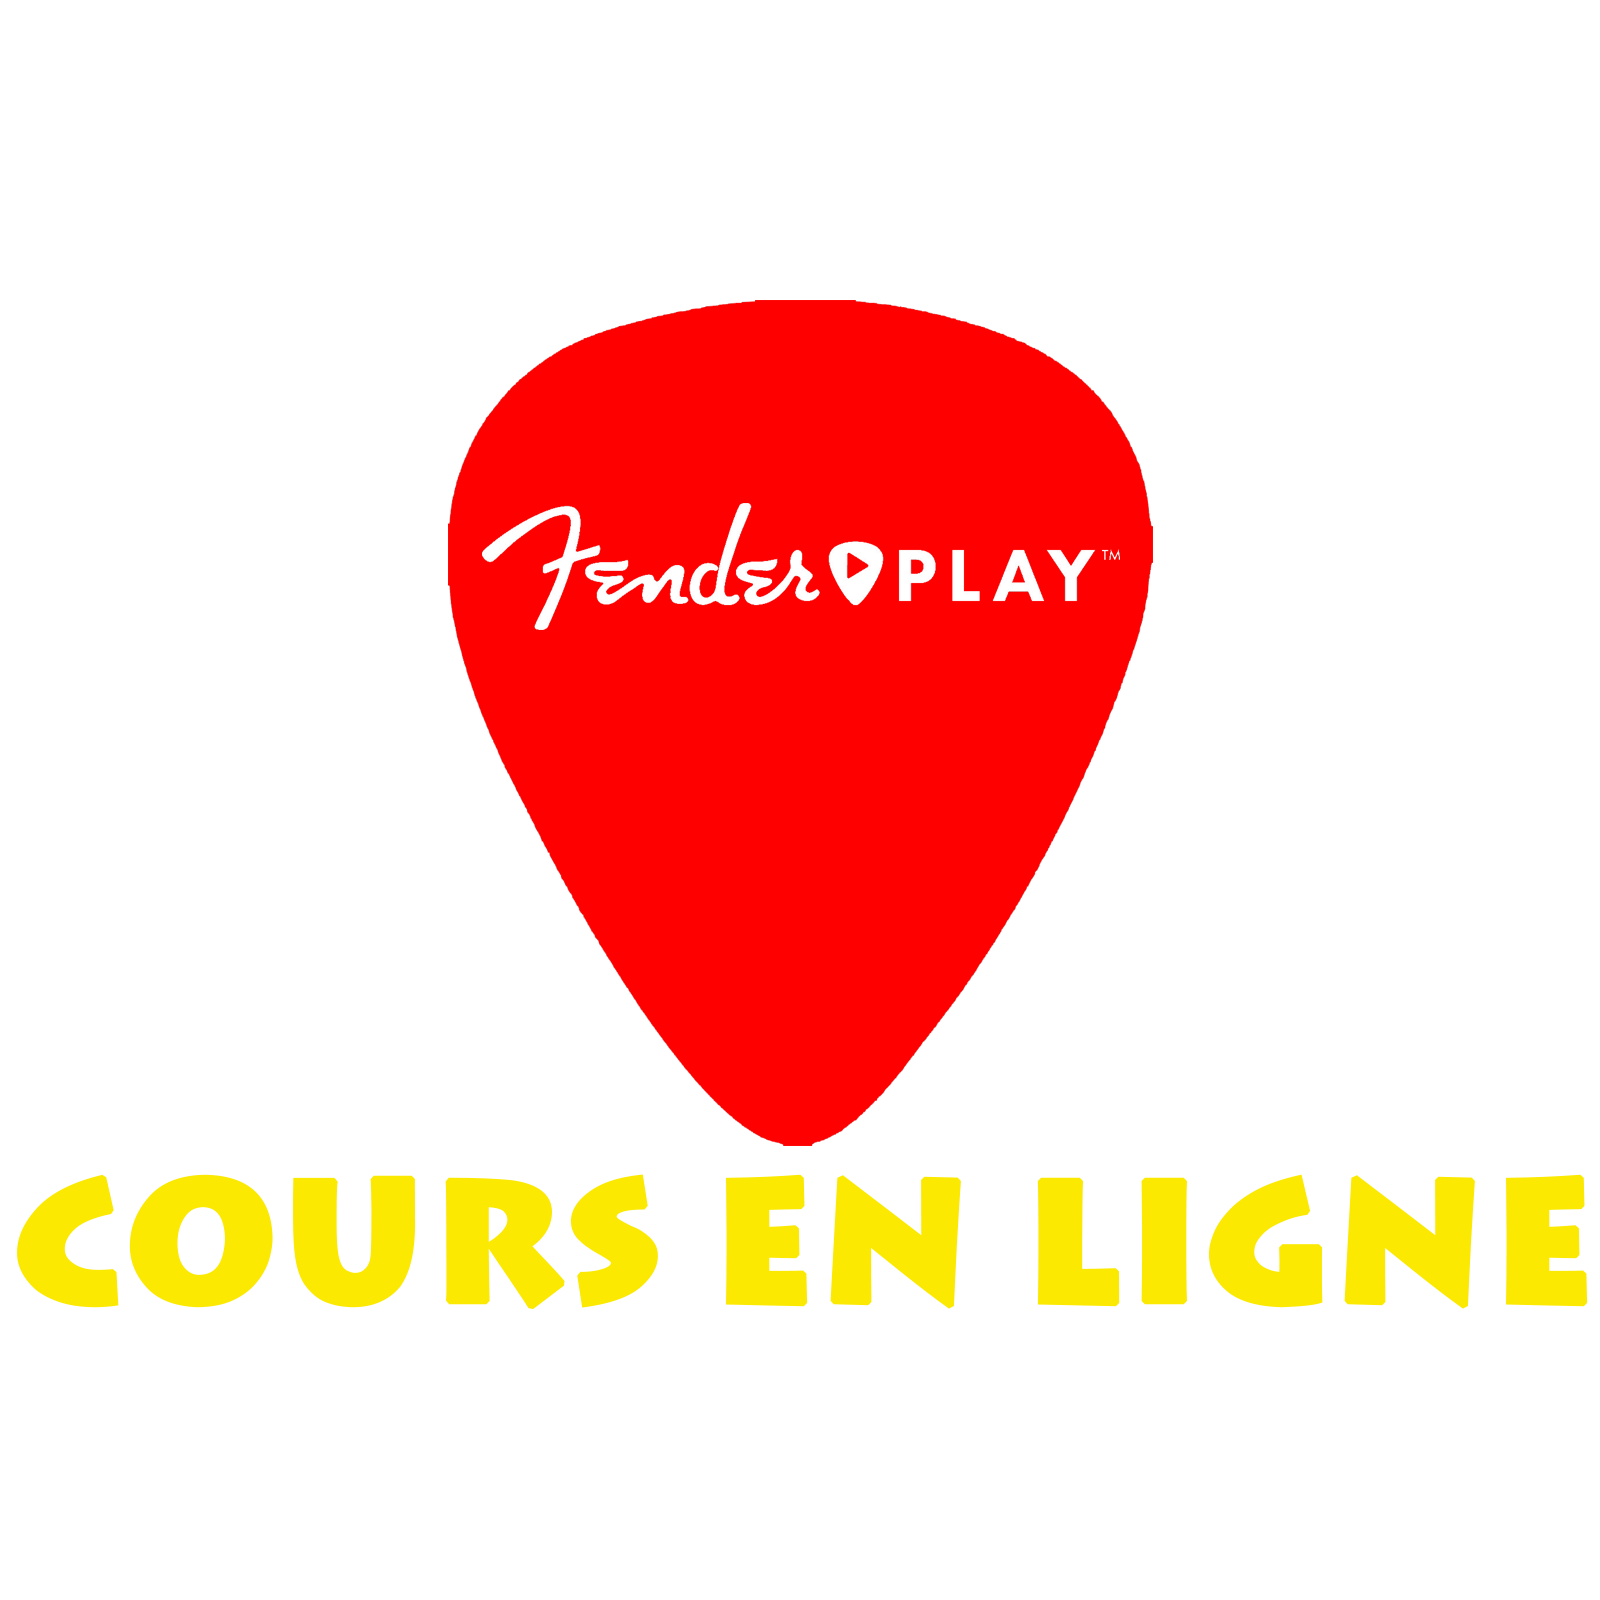 ICON fender play FRANCAIS rouge